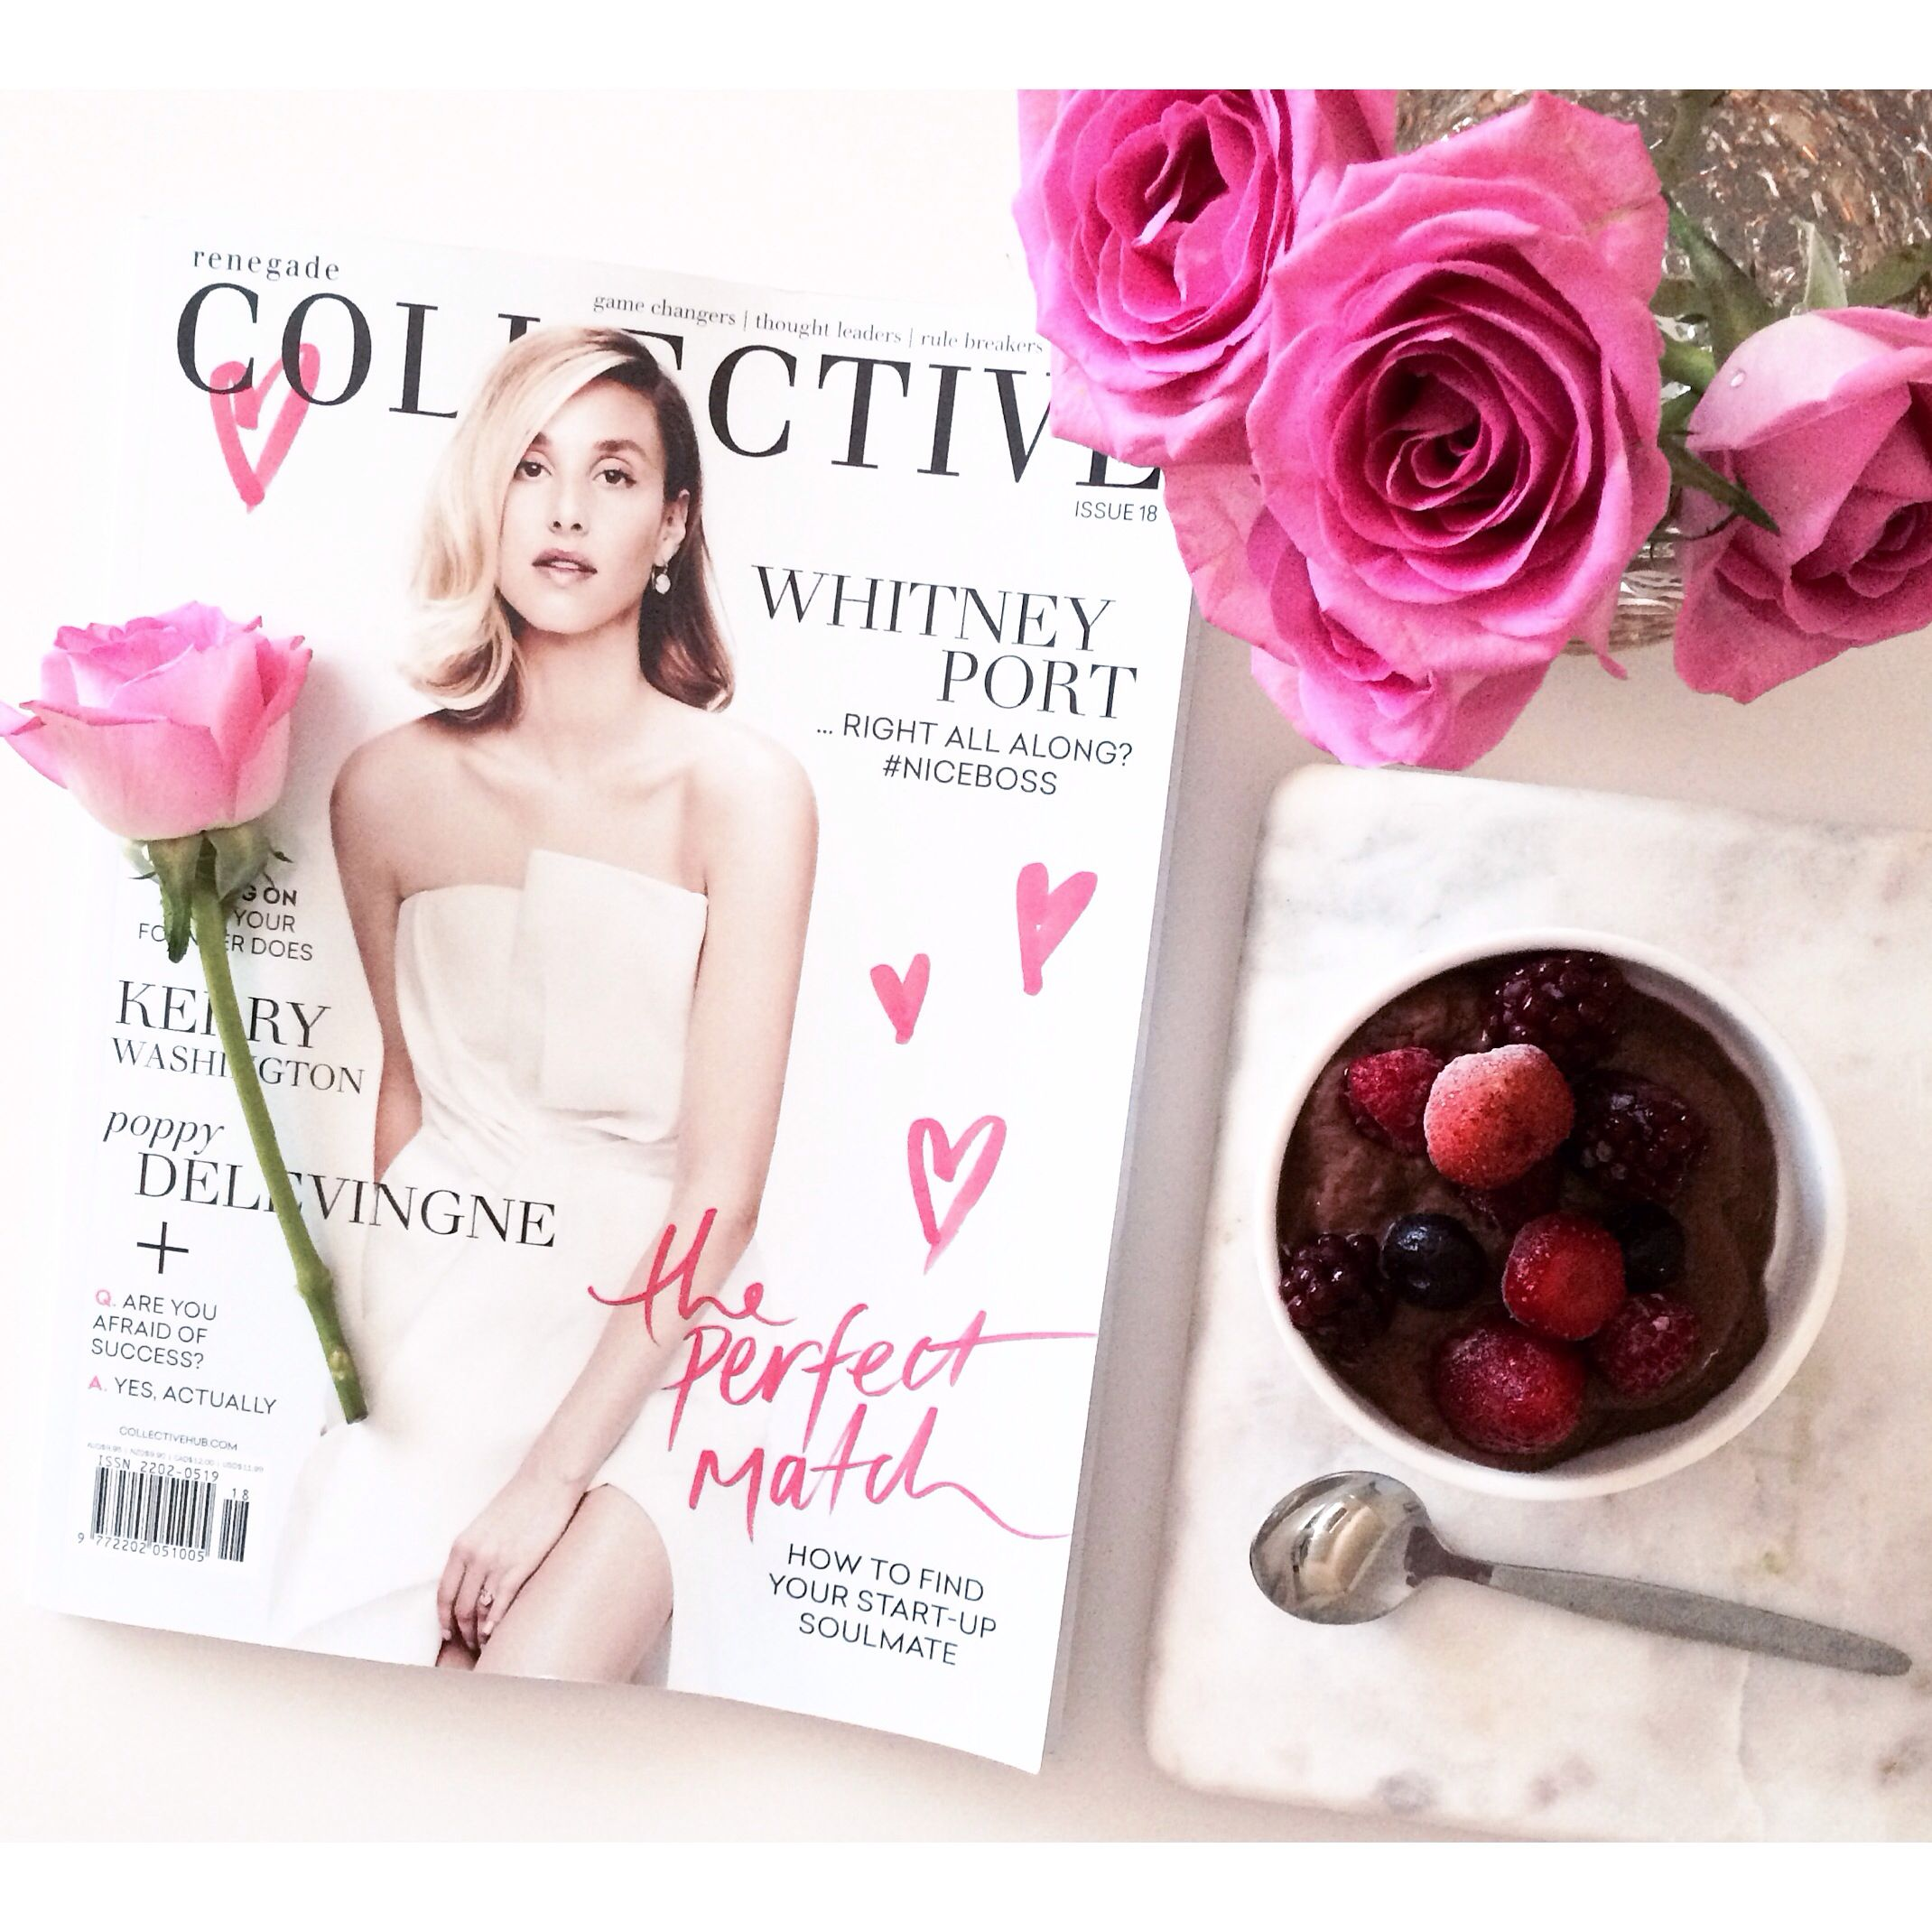 Afternoon delights! The latest @collectivehub + clean avo mousse (recipe by @healing_belle) #collectivehub #magazinelove #flatlay